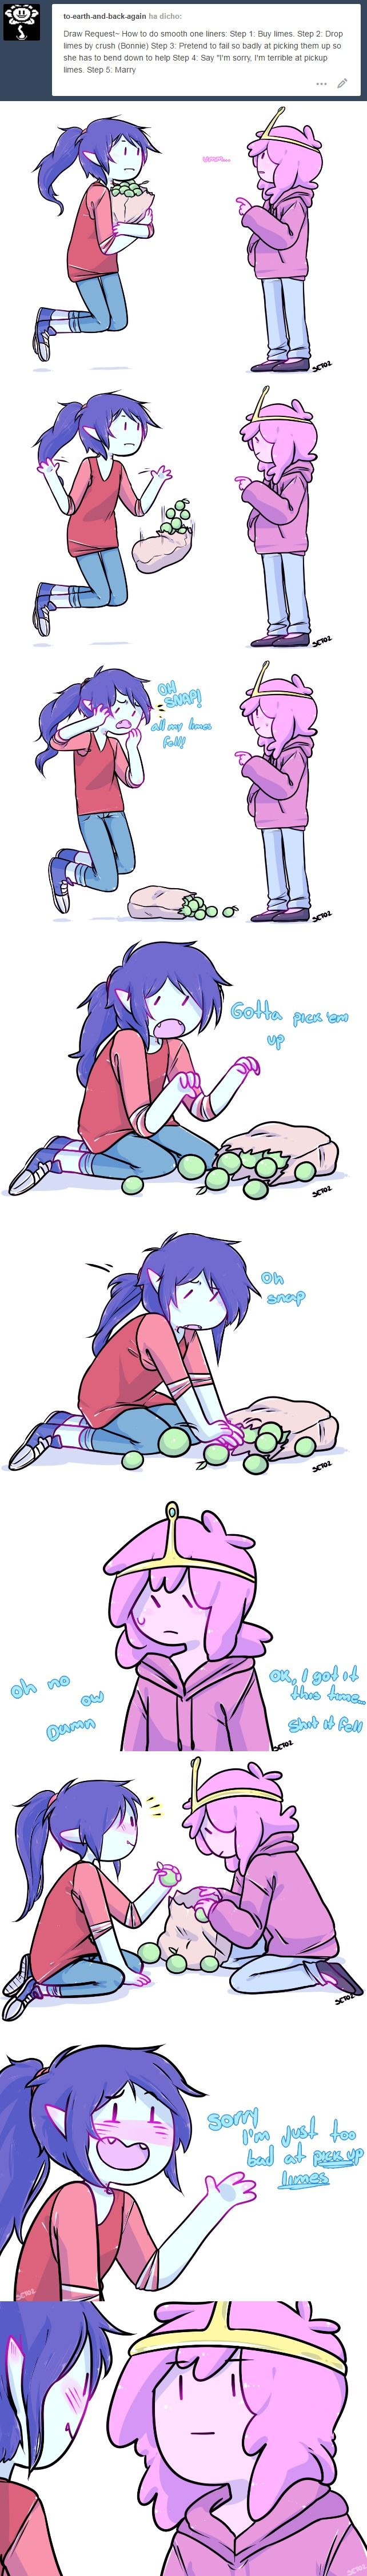 Bubbline Limes by seto2 - I need a relationship >_<